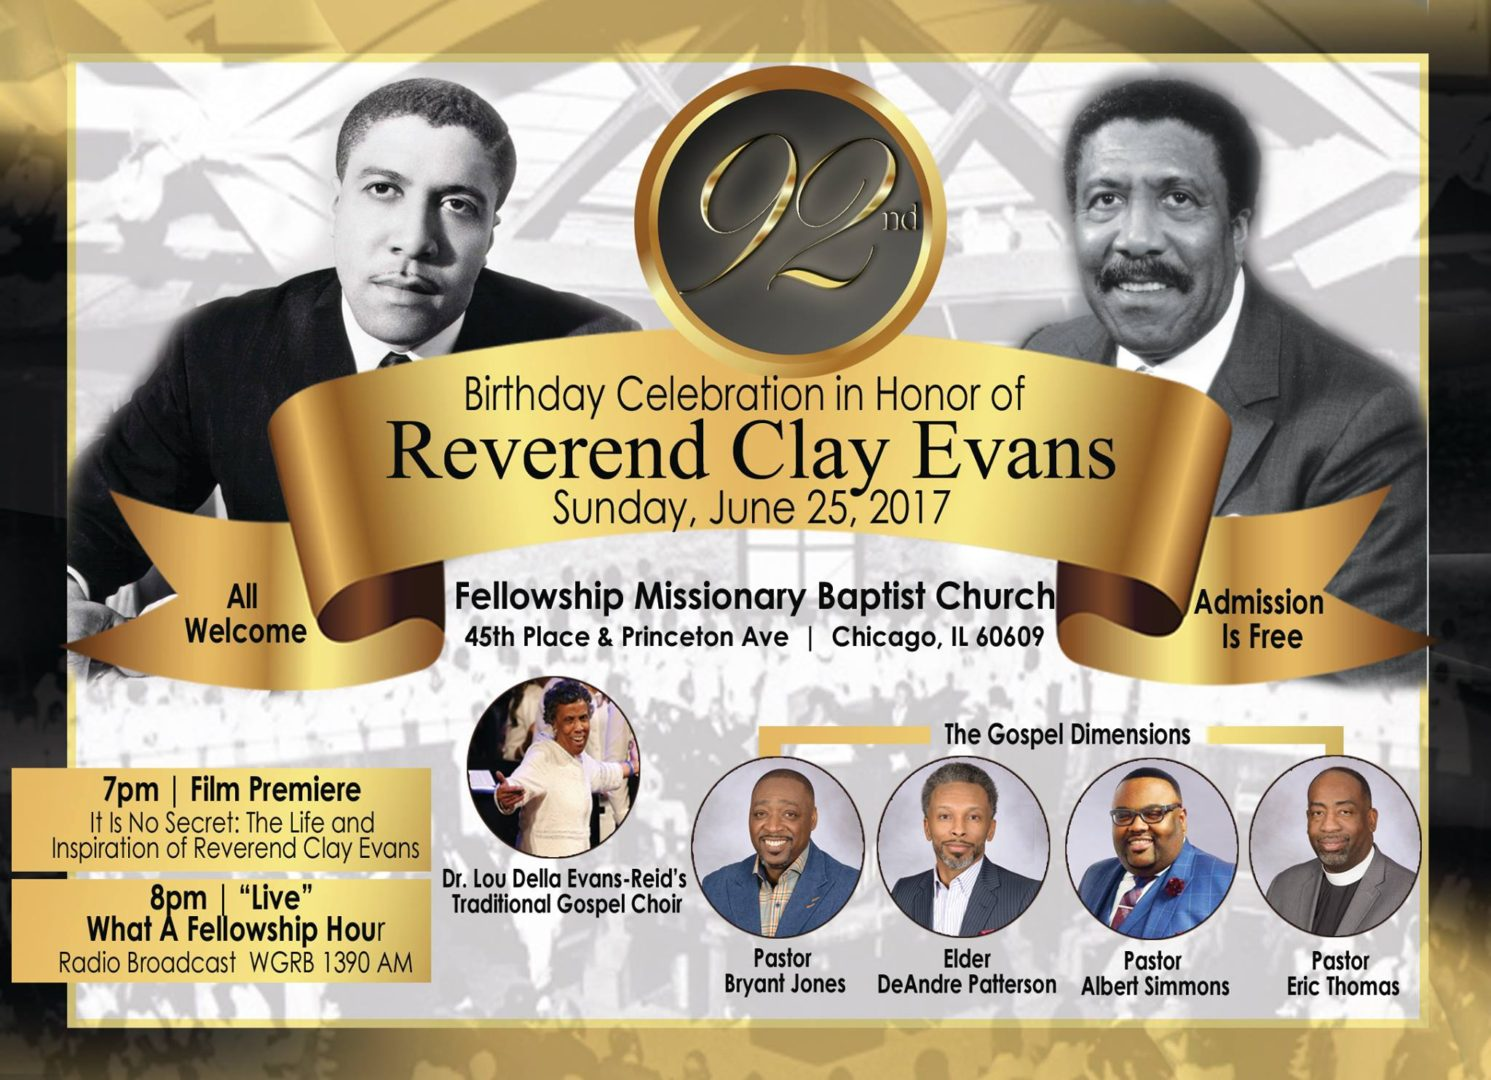 Rev. Dr. Clay Evans 92nd Birthday Celebration